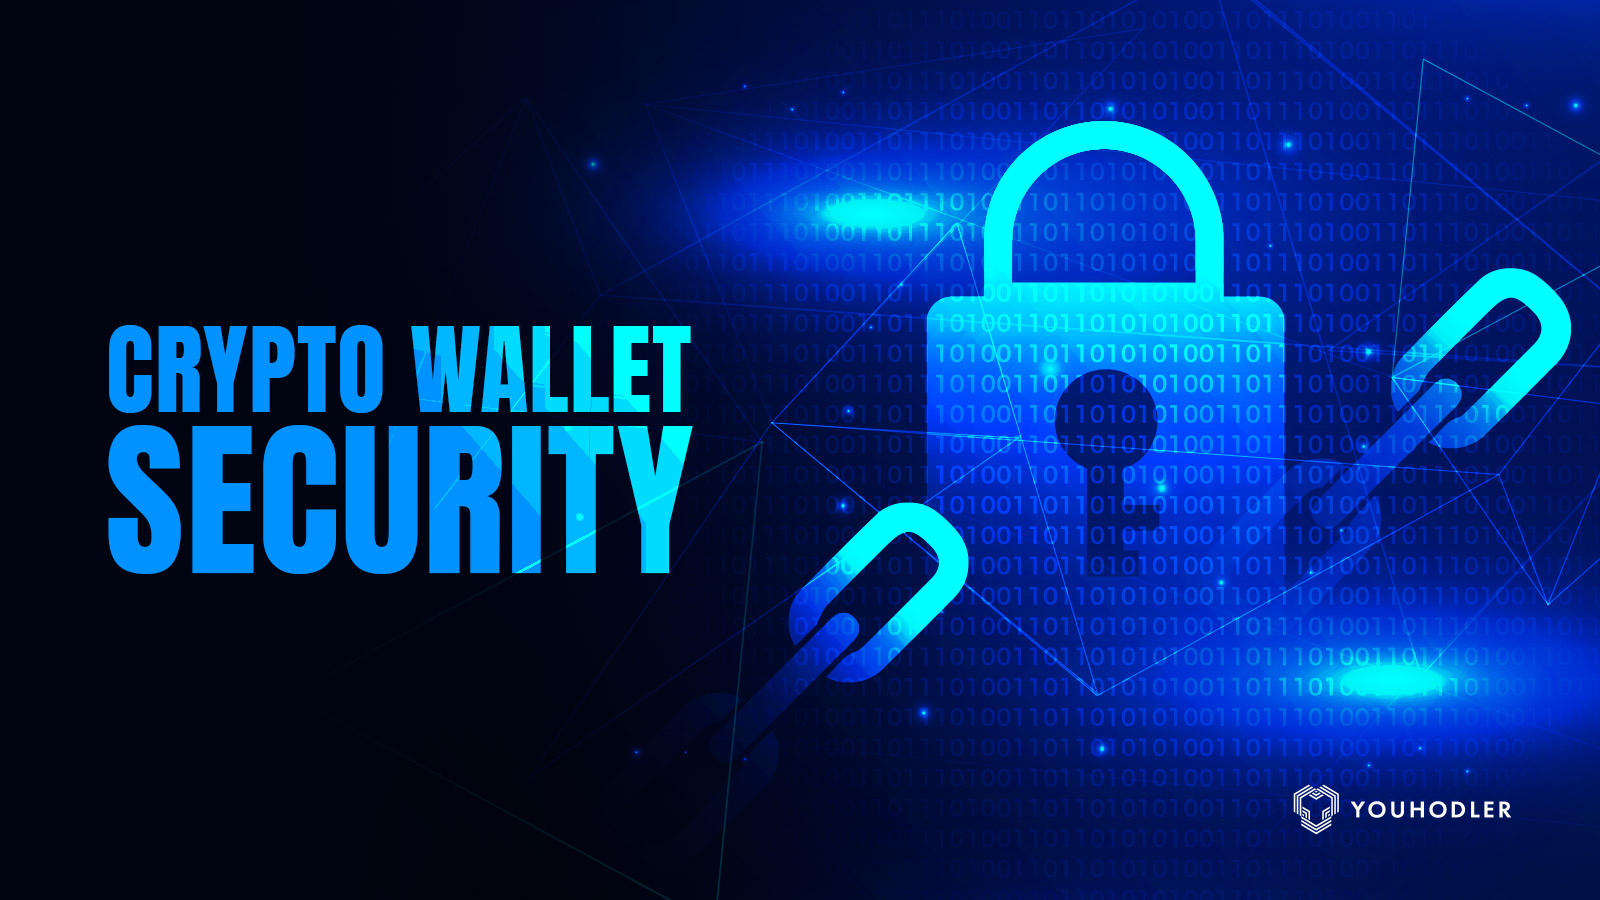 a picture of a lock symbolizes crypto wallet security